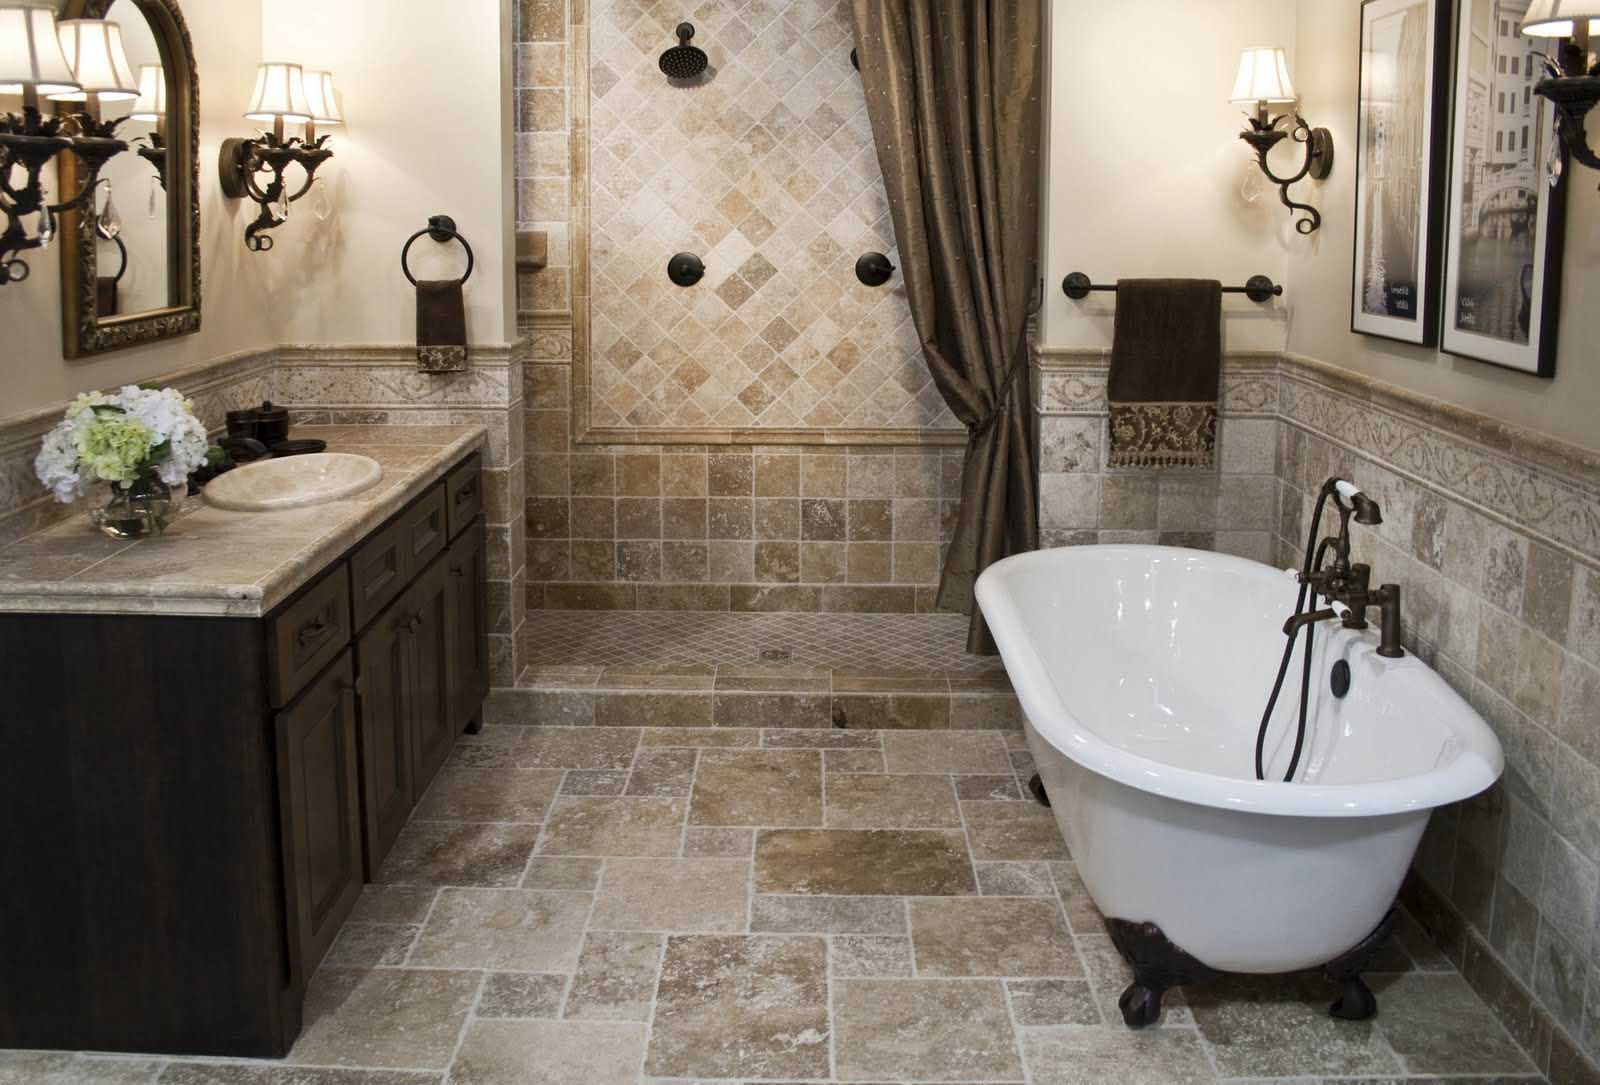 25 Bathroom Ideas For Small Spaces on beautiful bathrooms on pinterest, beautiful living room, beautiful bath designs, beautiful computer designs, beautiful stair designs, beautiful water designs, beautiful tree house designs, beautiful attic designs, beautiful bird houses designs, beautiful elegant furniture, beautiful clothing designs, beautiful house plans designs, beautiful design line, beautiful pantry designs, beautiful bathrooms on a budget, bedroom designs, beautiful modern sofa designs, kitchen designs, beautiful master bathrooms, beautiful marble bathrooms,